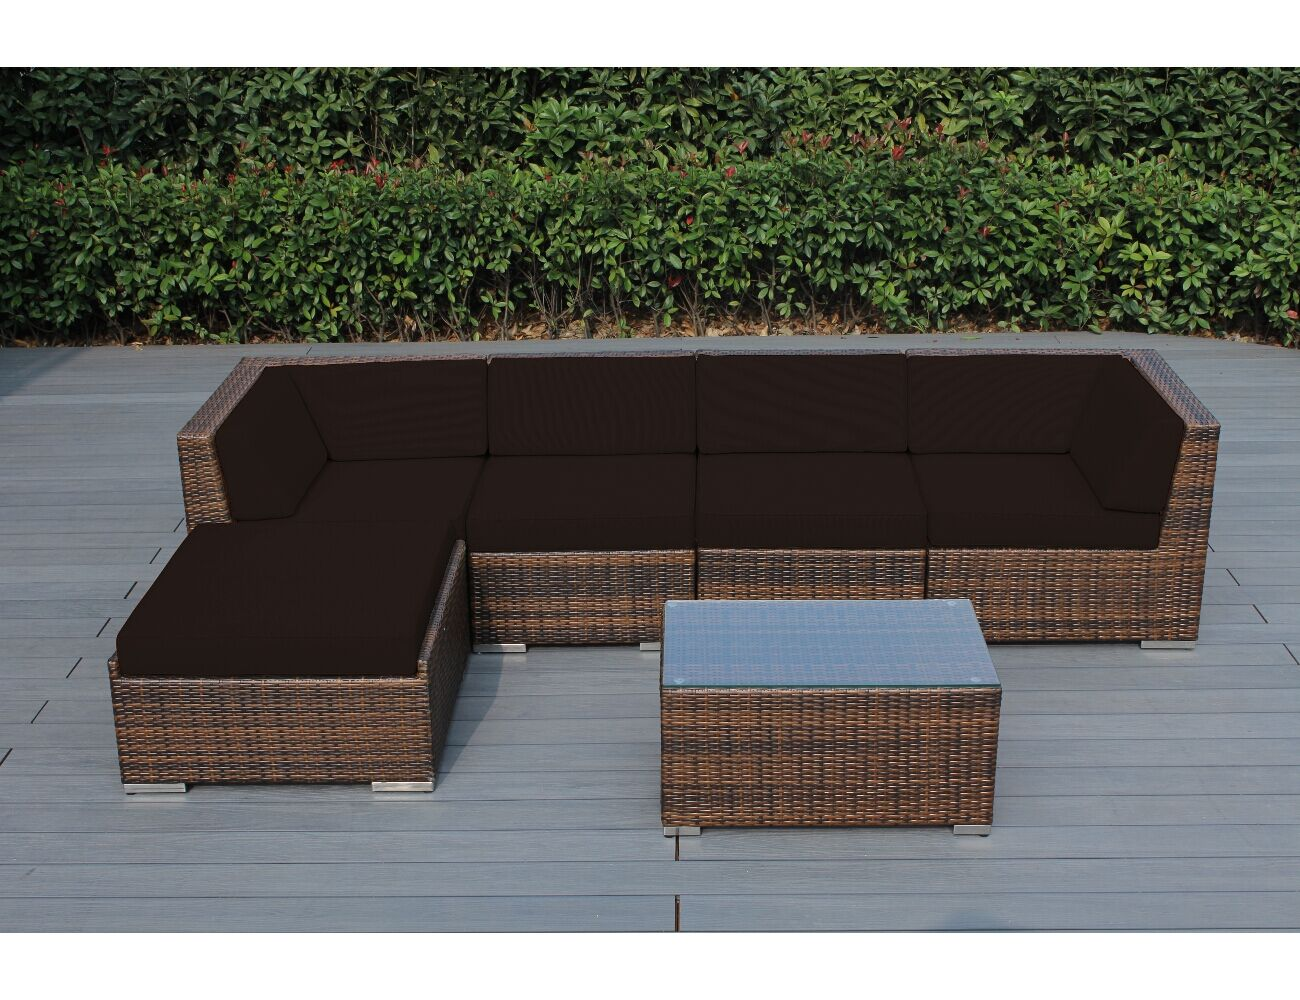 Baril 6 Piece Sectional Set with Cushions Frame Finish: Mixed Brown, Cushion Color: Brown